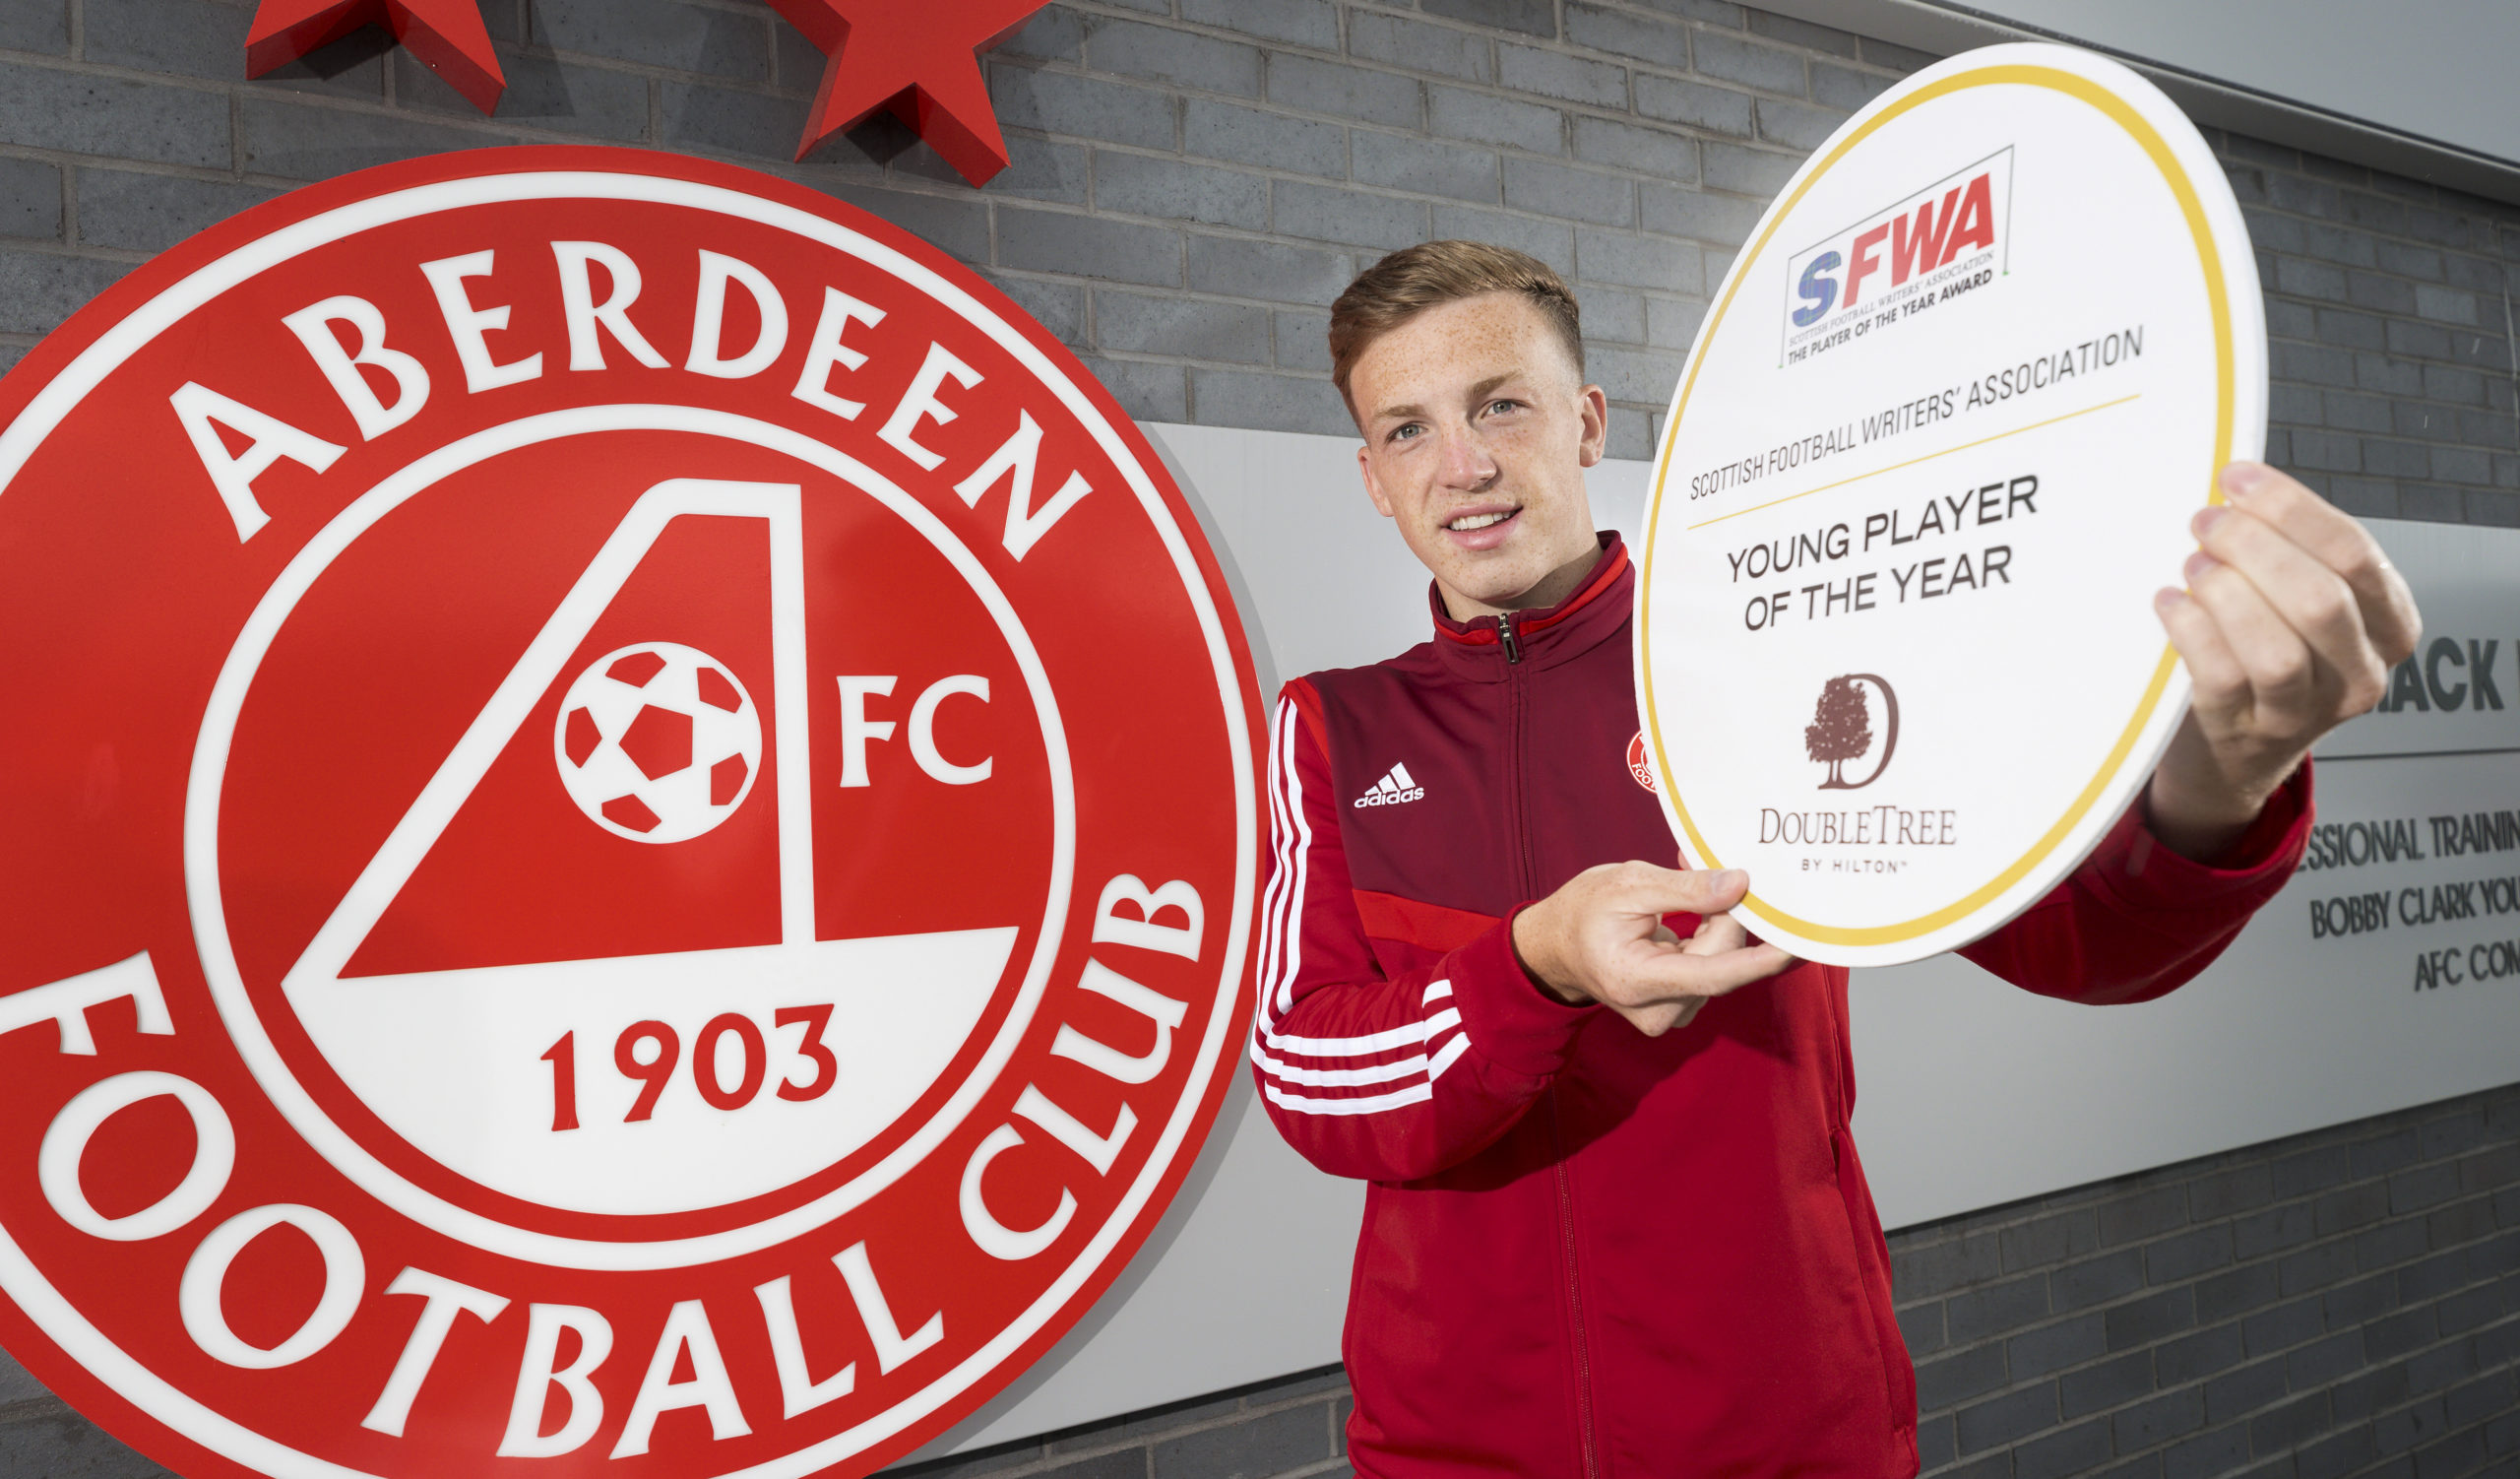 Lewis Ferguson of Aberdeen has been voted as Young  Player of the Year by The Scottish Football Writers' Association.